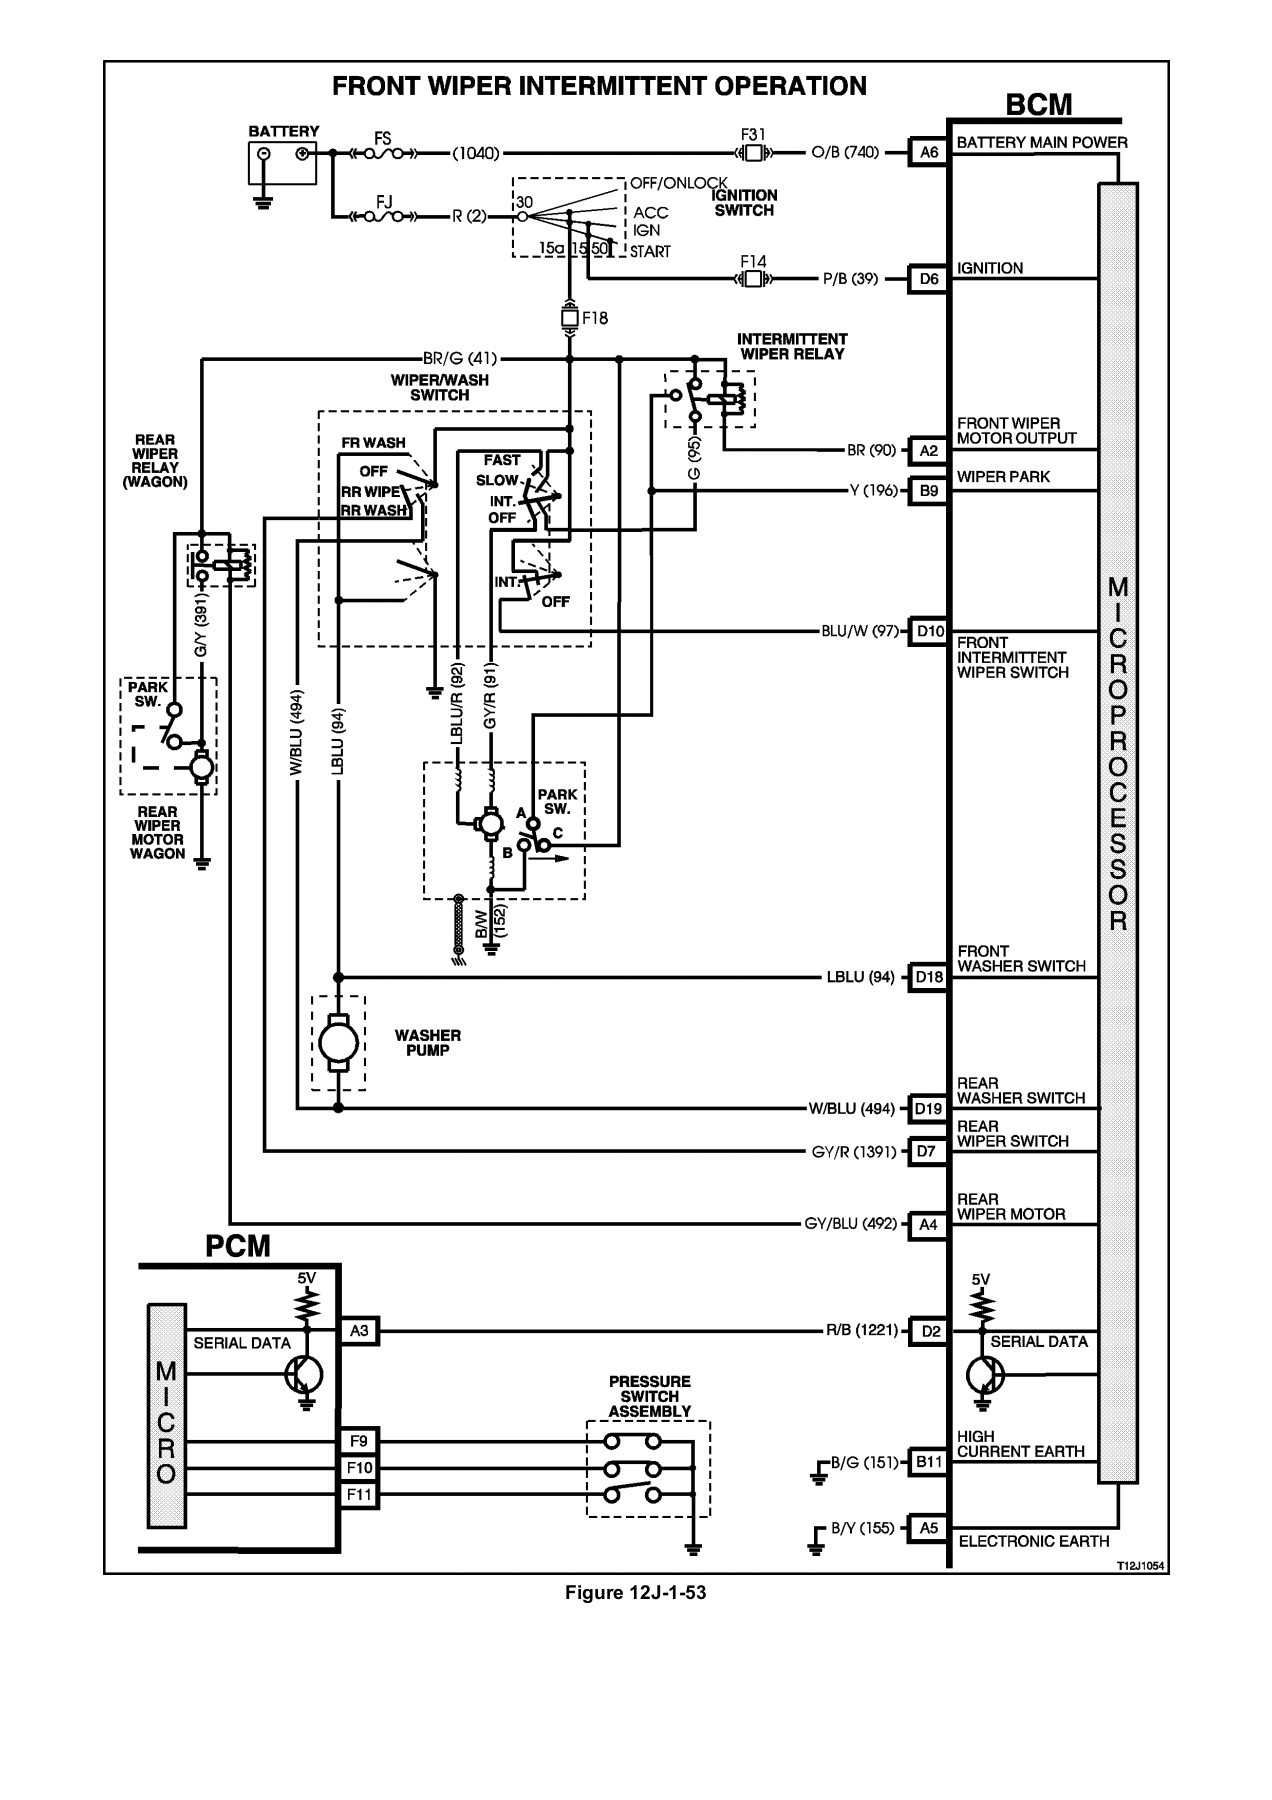 Diagram Wiring Diagram Likewise Vz Commodore As Well